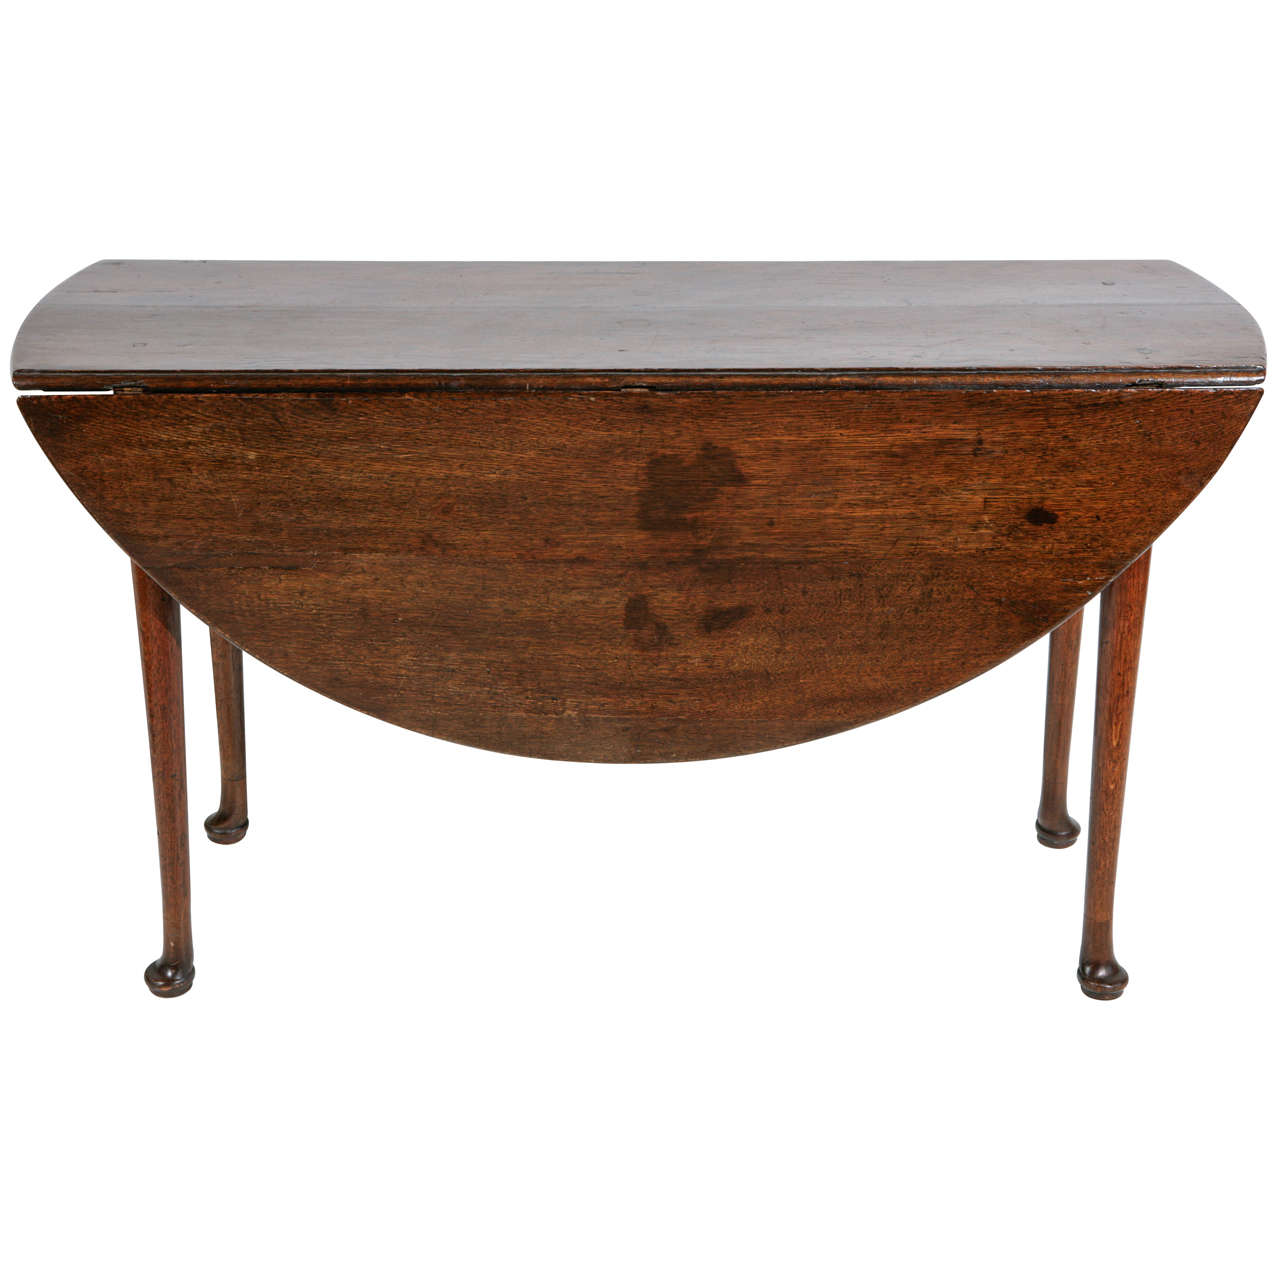 Queen anne walnut drop leaf round dining table and console for Round drop leaf dining table